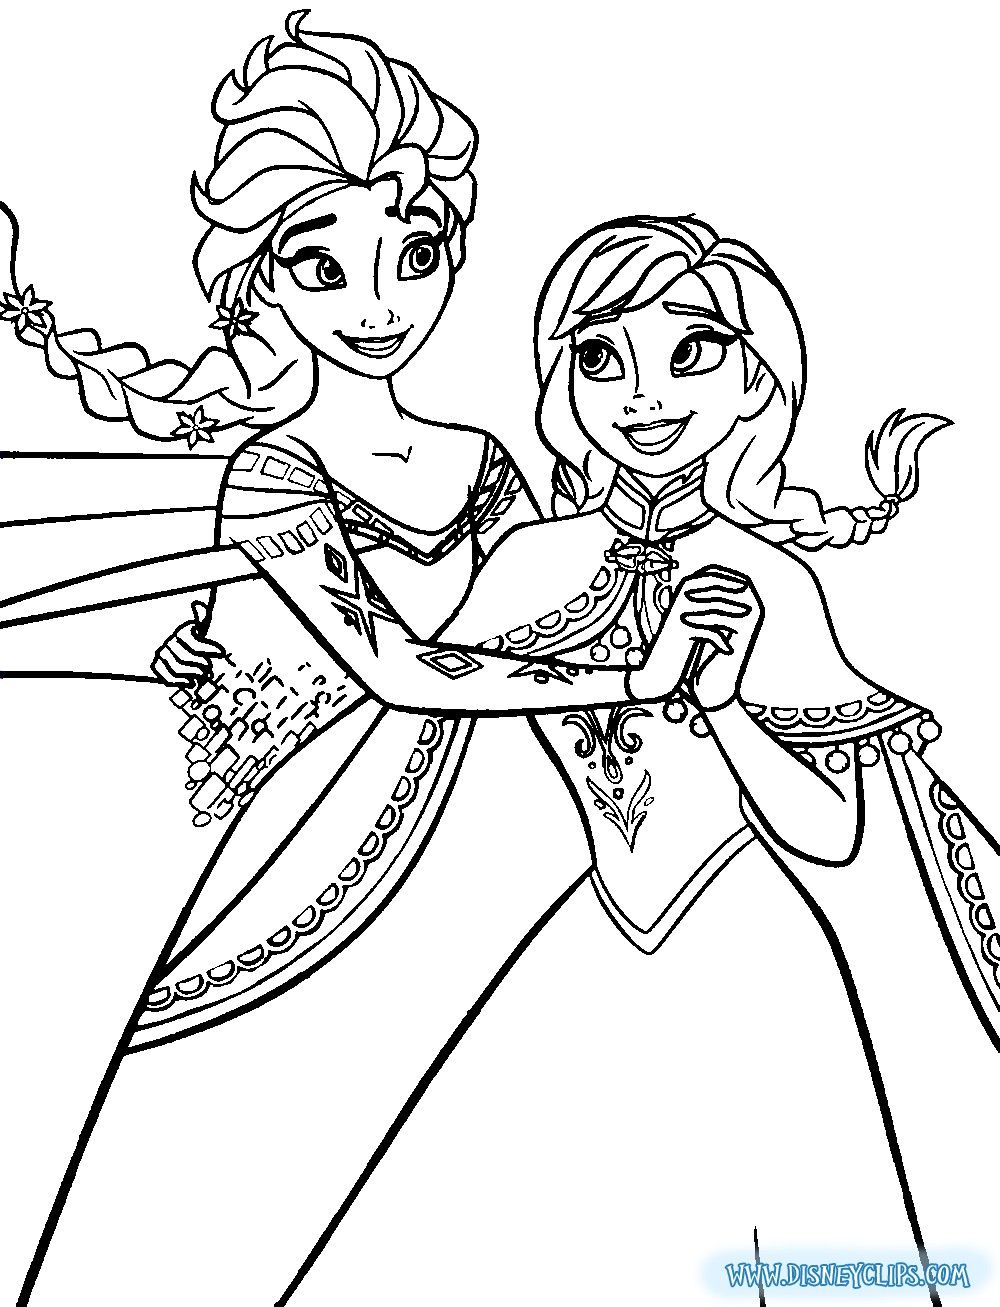 Disney Princess Coloring Pages Frozen Elsa And Anna Taken